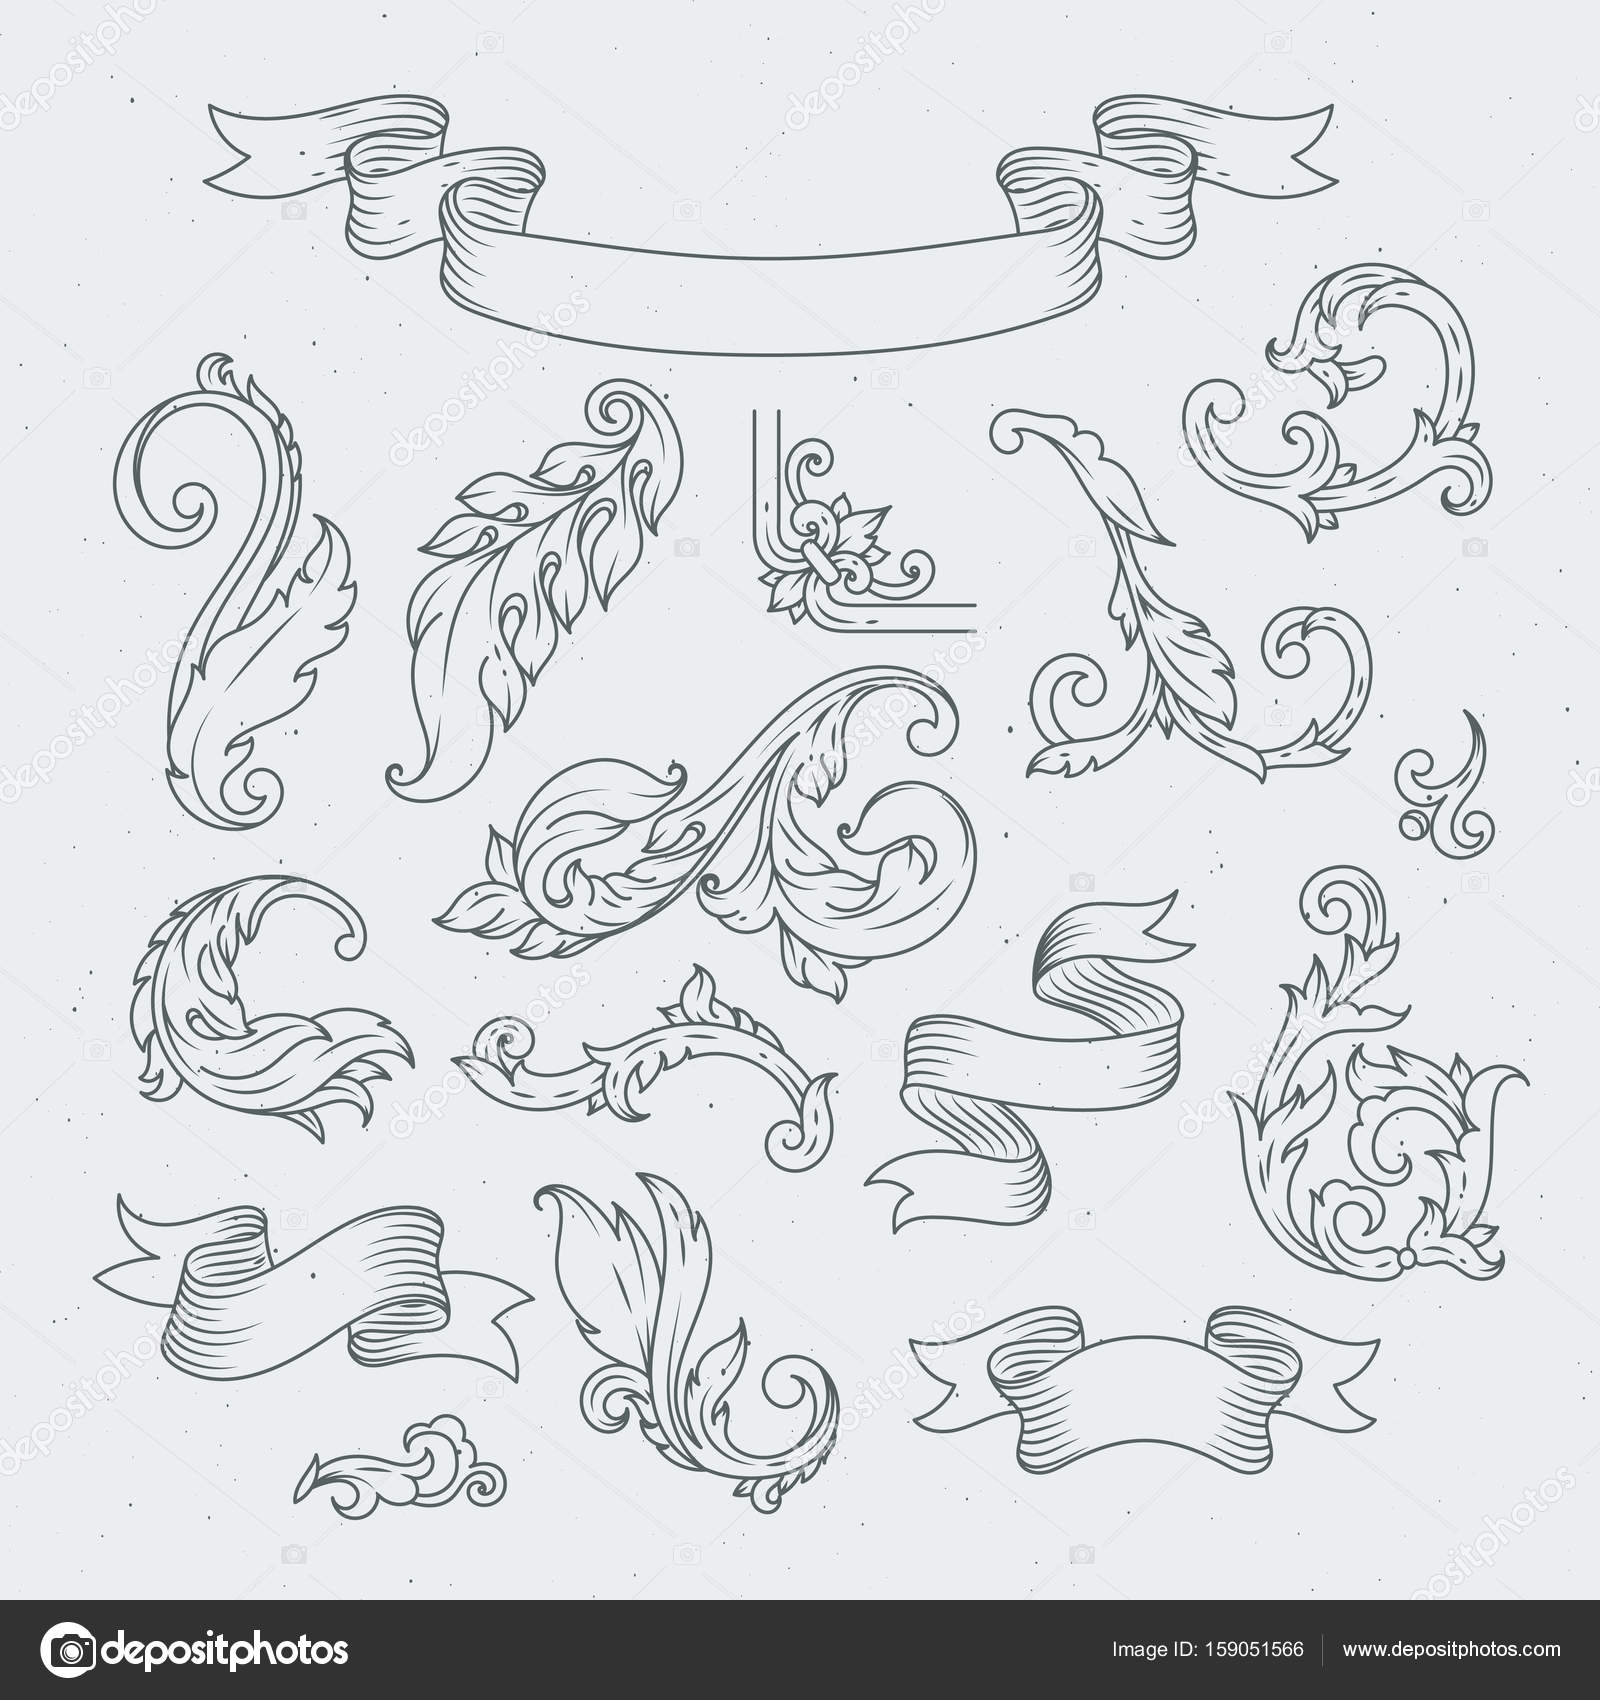 decorative elements in baroque style victorian ornament acanthus leaves stock vector c onyxprj 159051566 https depositphotos com 159051566 stock illustration decorative elements in baroque style html